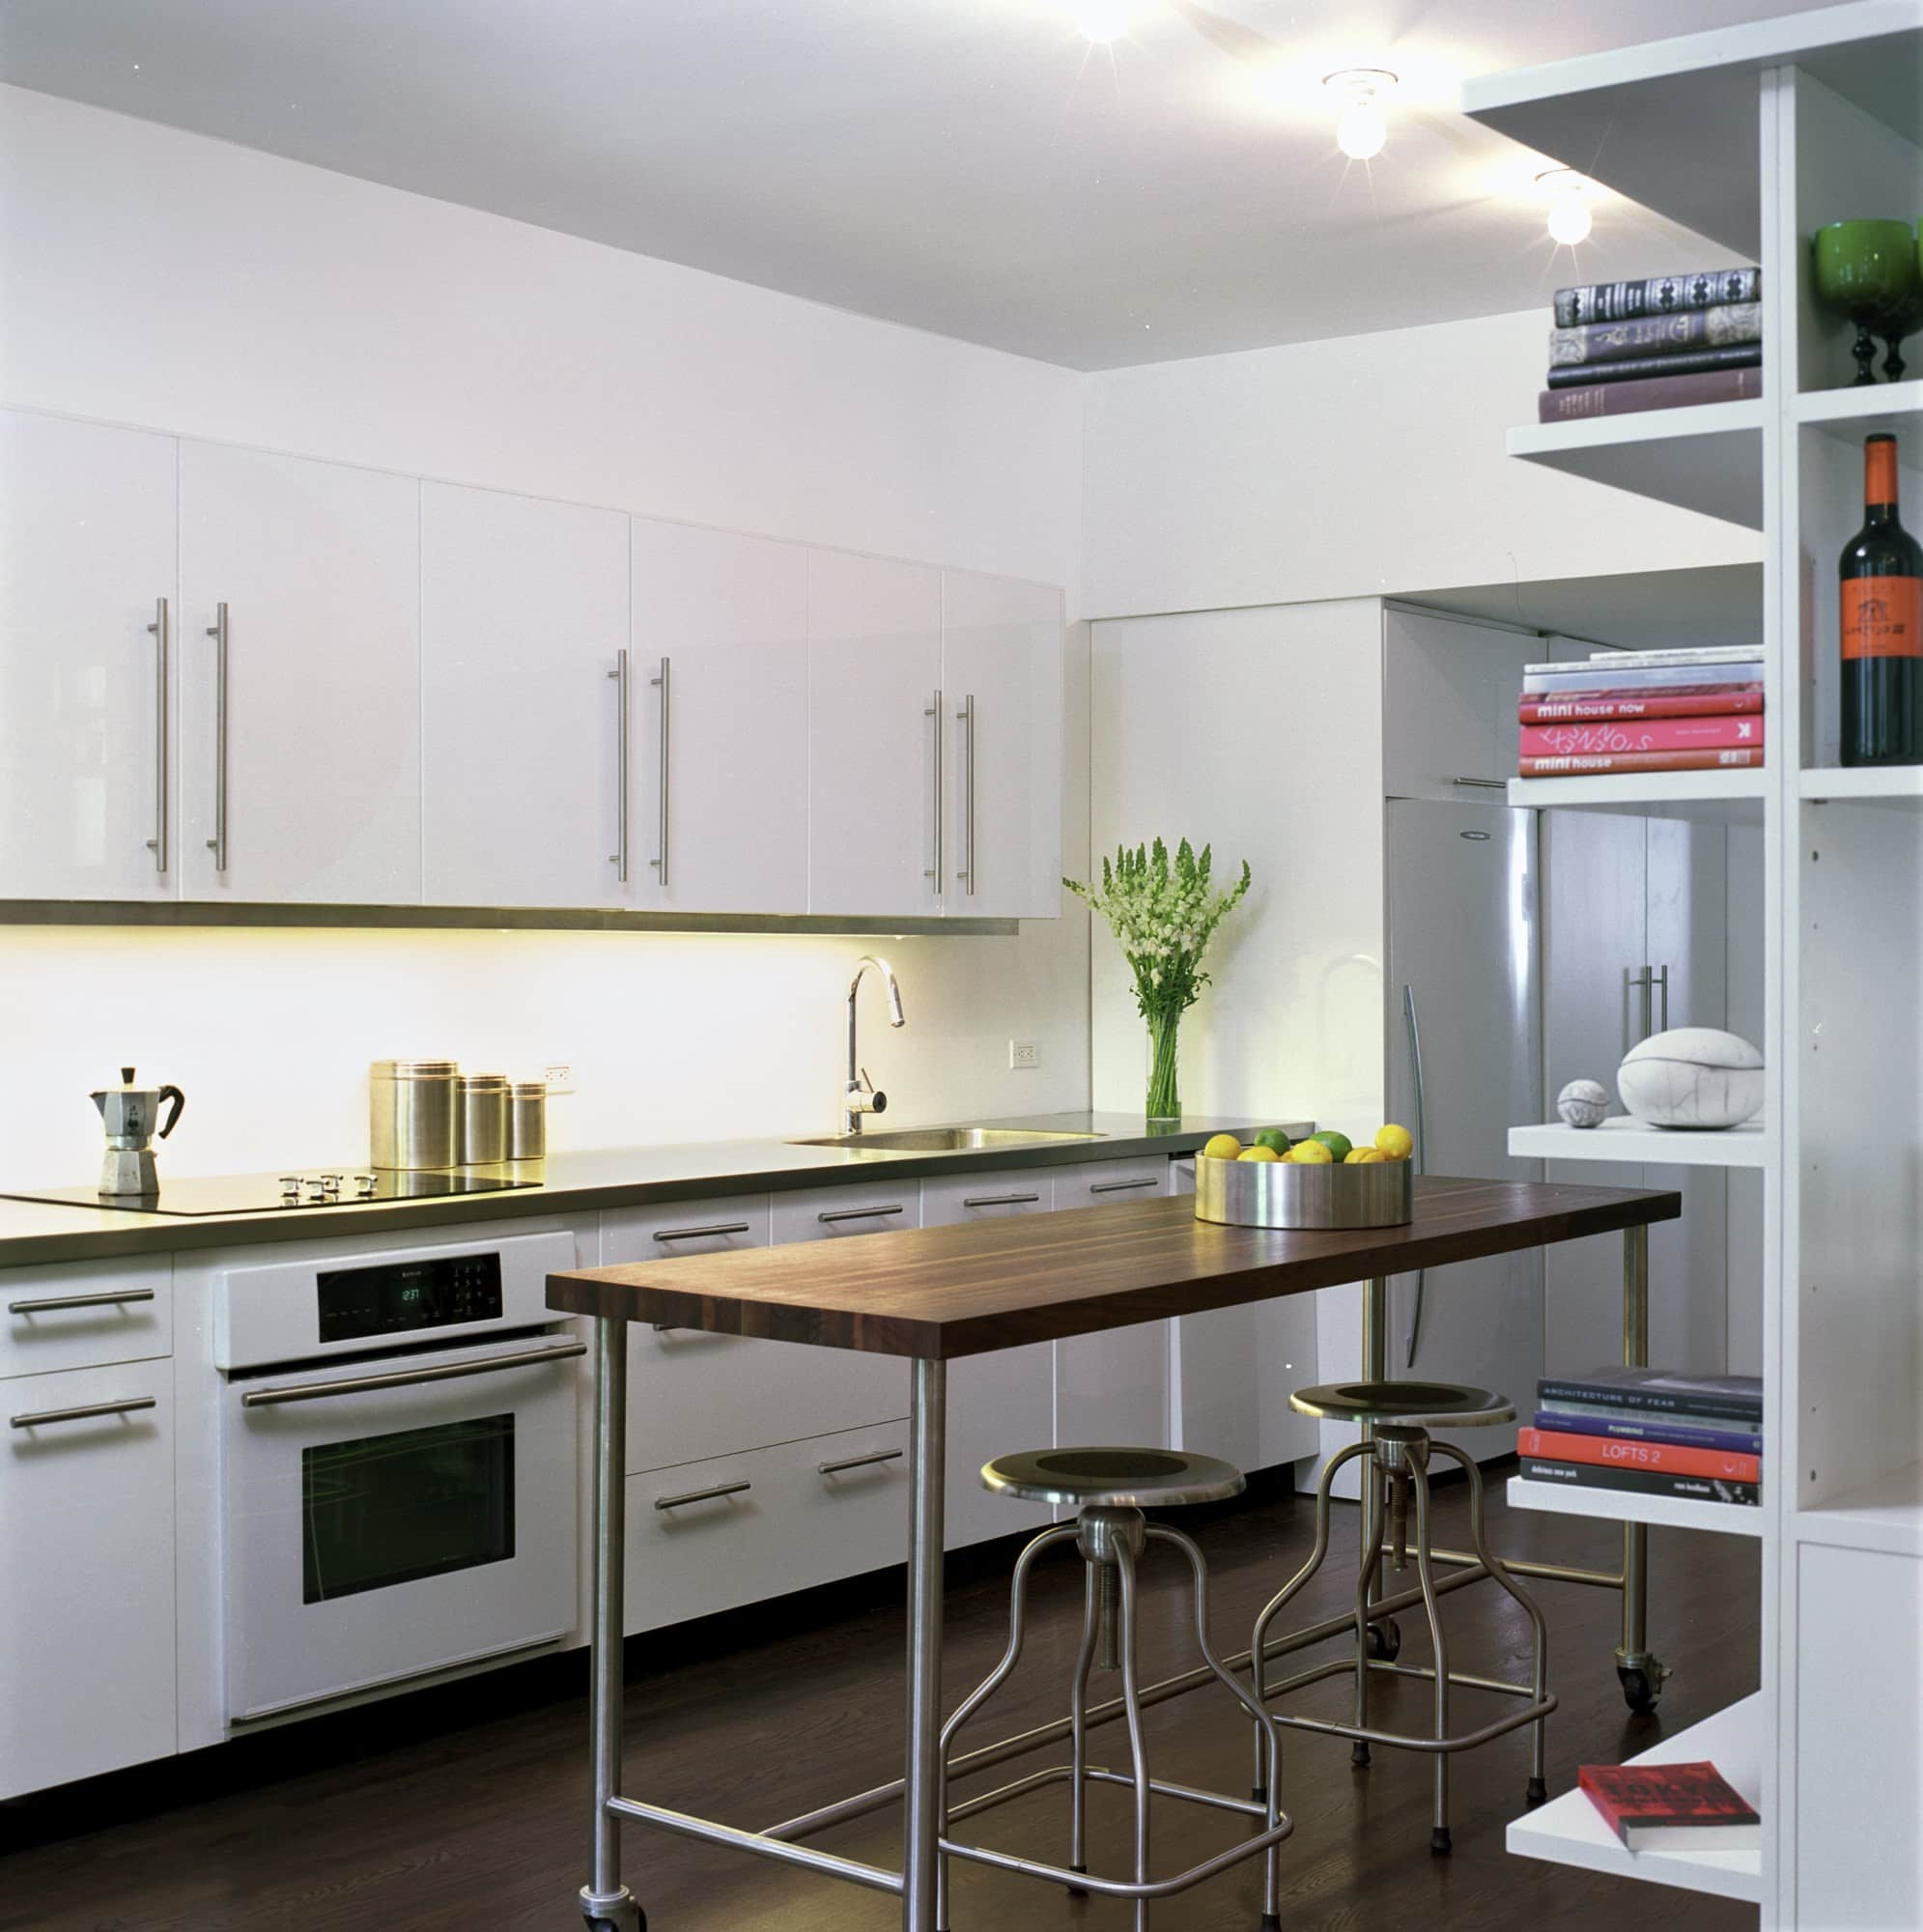 IKEA Employee Shares Tips for Buying IKEA Kitchen | Apartment Therapy